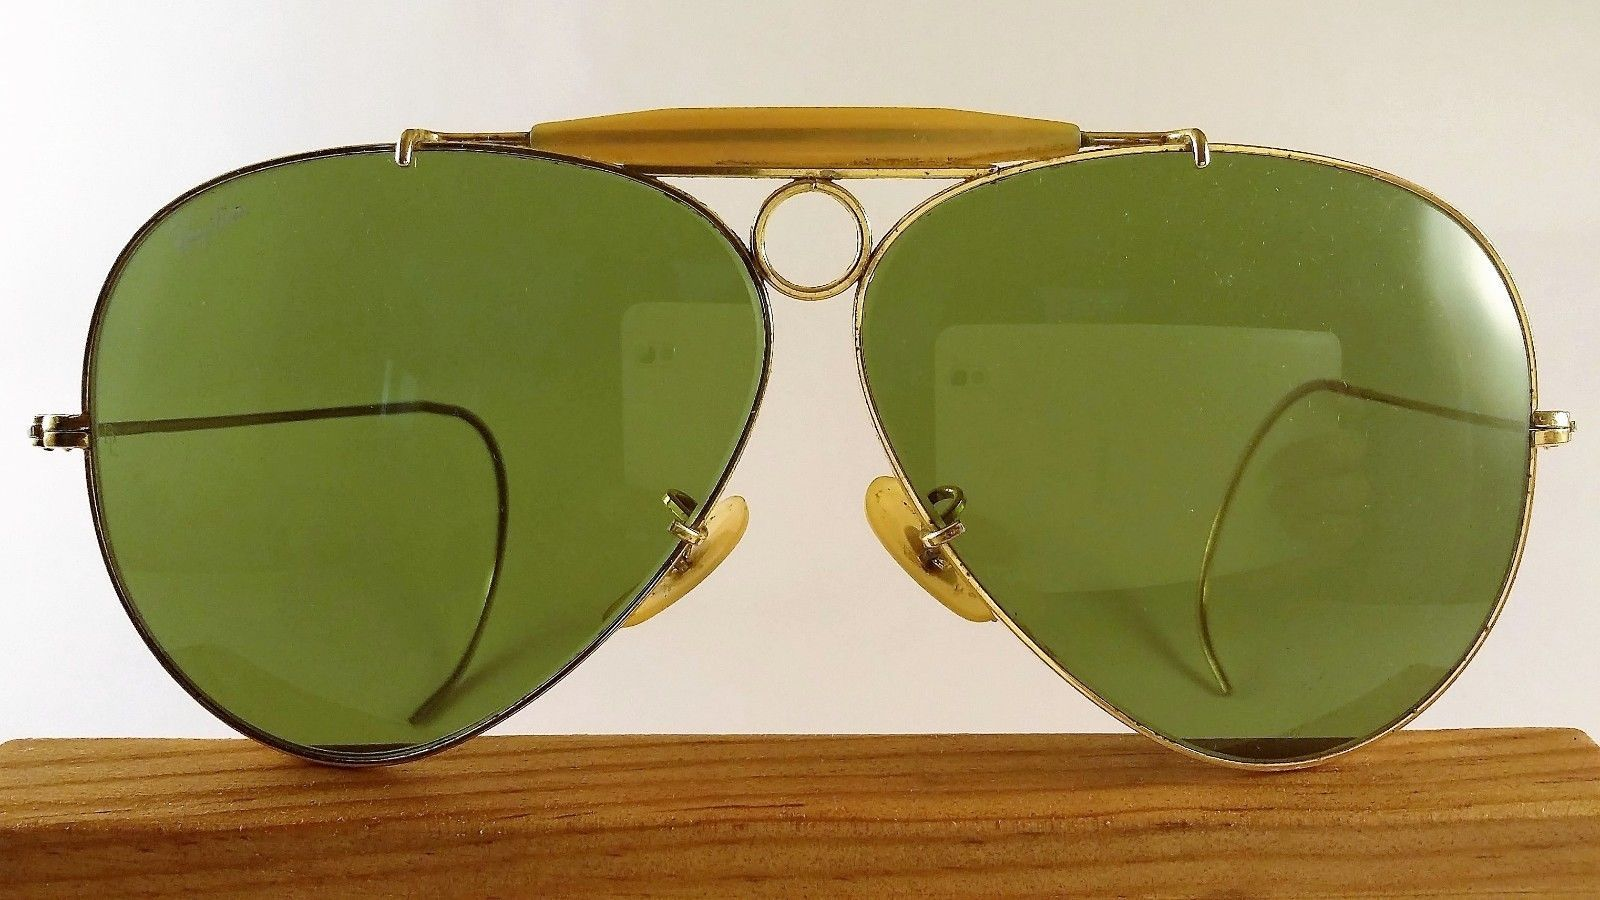 e993f200132 VINTAGE B L Ray-Ban Aviator Bullet Hole Outdoorsman Shooter Sunglasses    Case -  78.00.